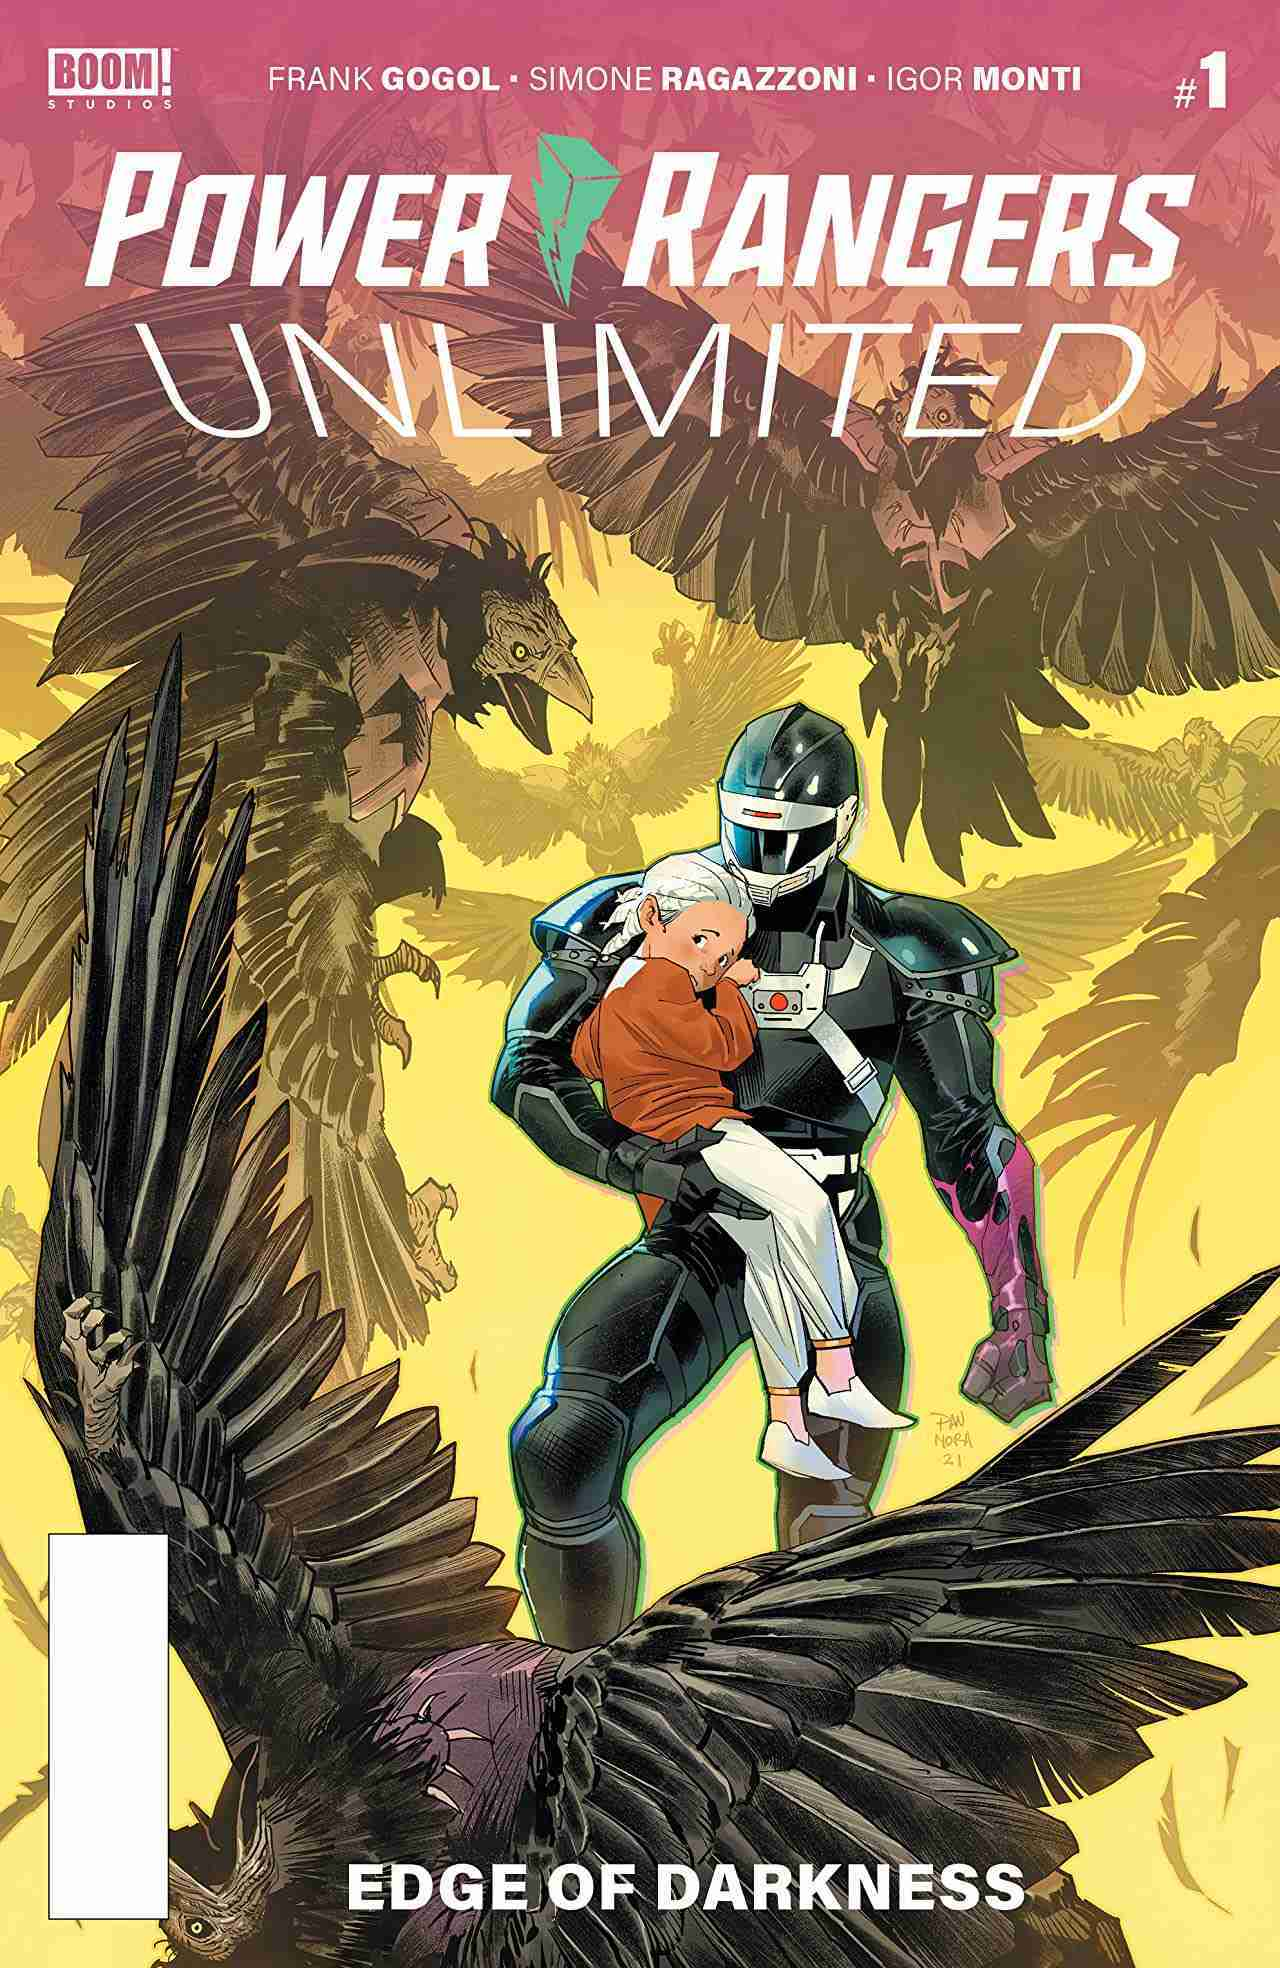 Power Rangers Unlimited Edge of Darkness #1